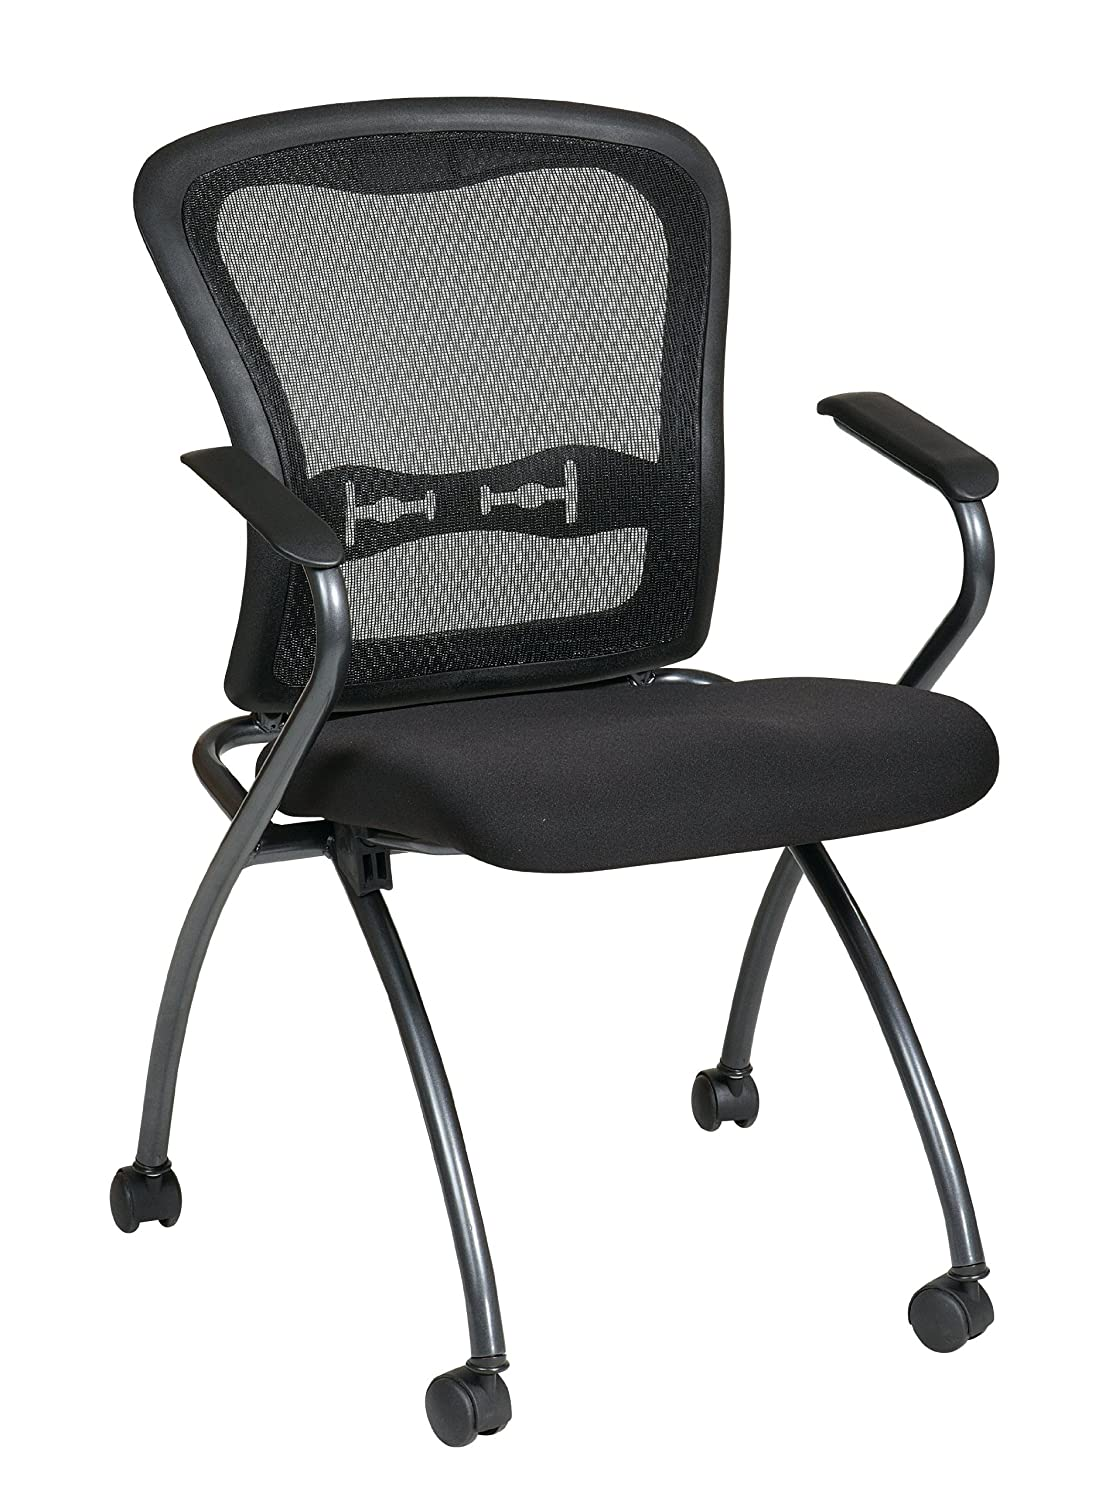 office star deluxe folding chair with progrid back and arms in titanium 2 pack ebay. Black Bedroom Furniture Sets. Home Design Ideas